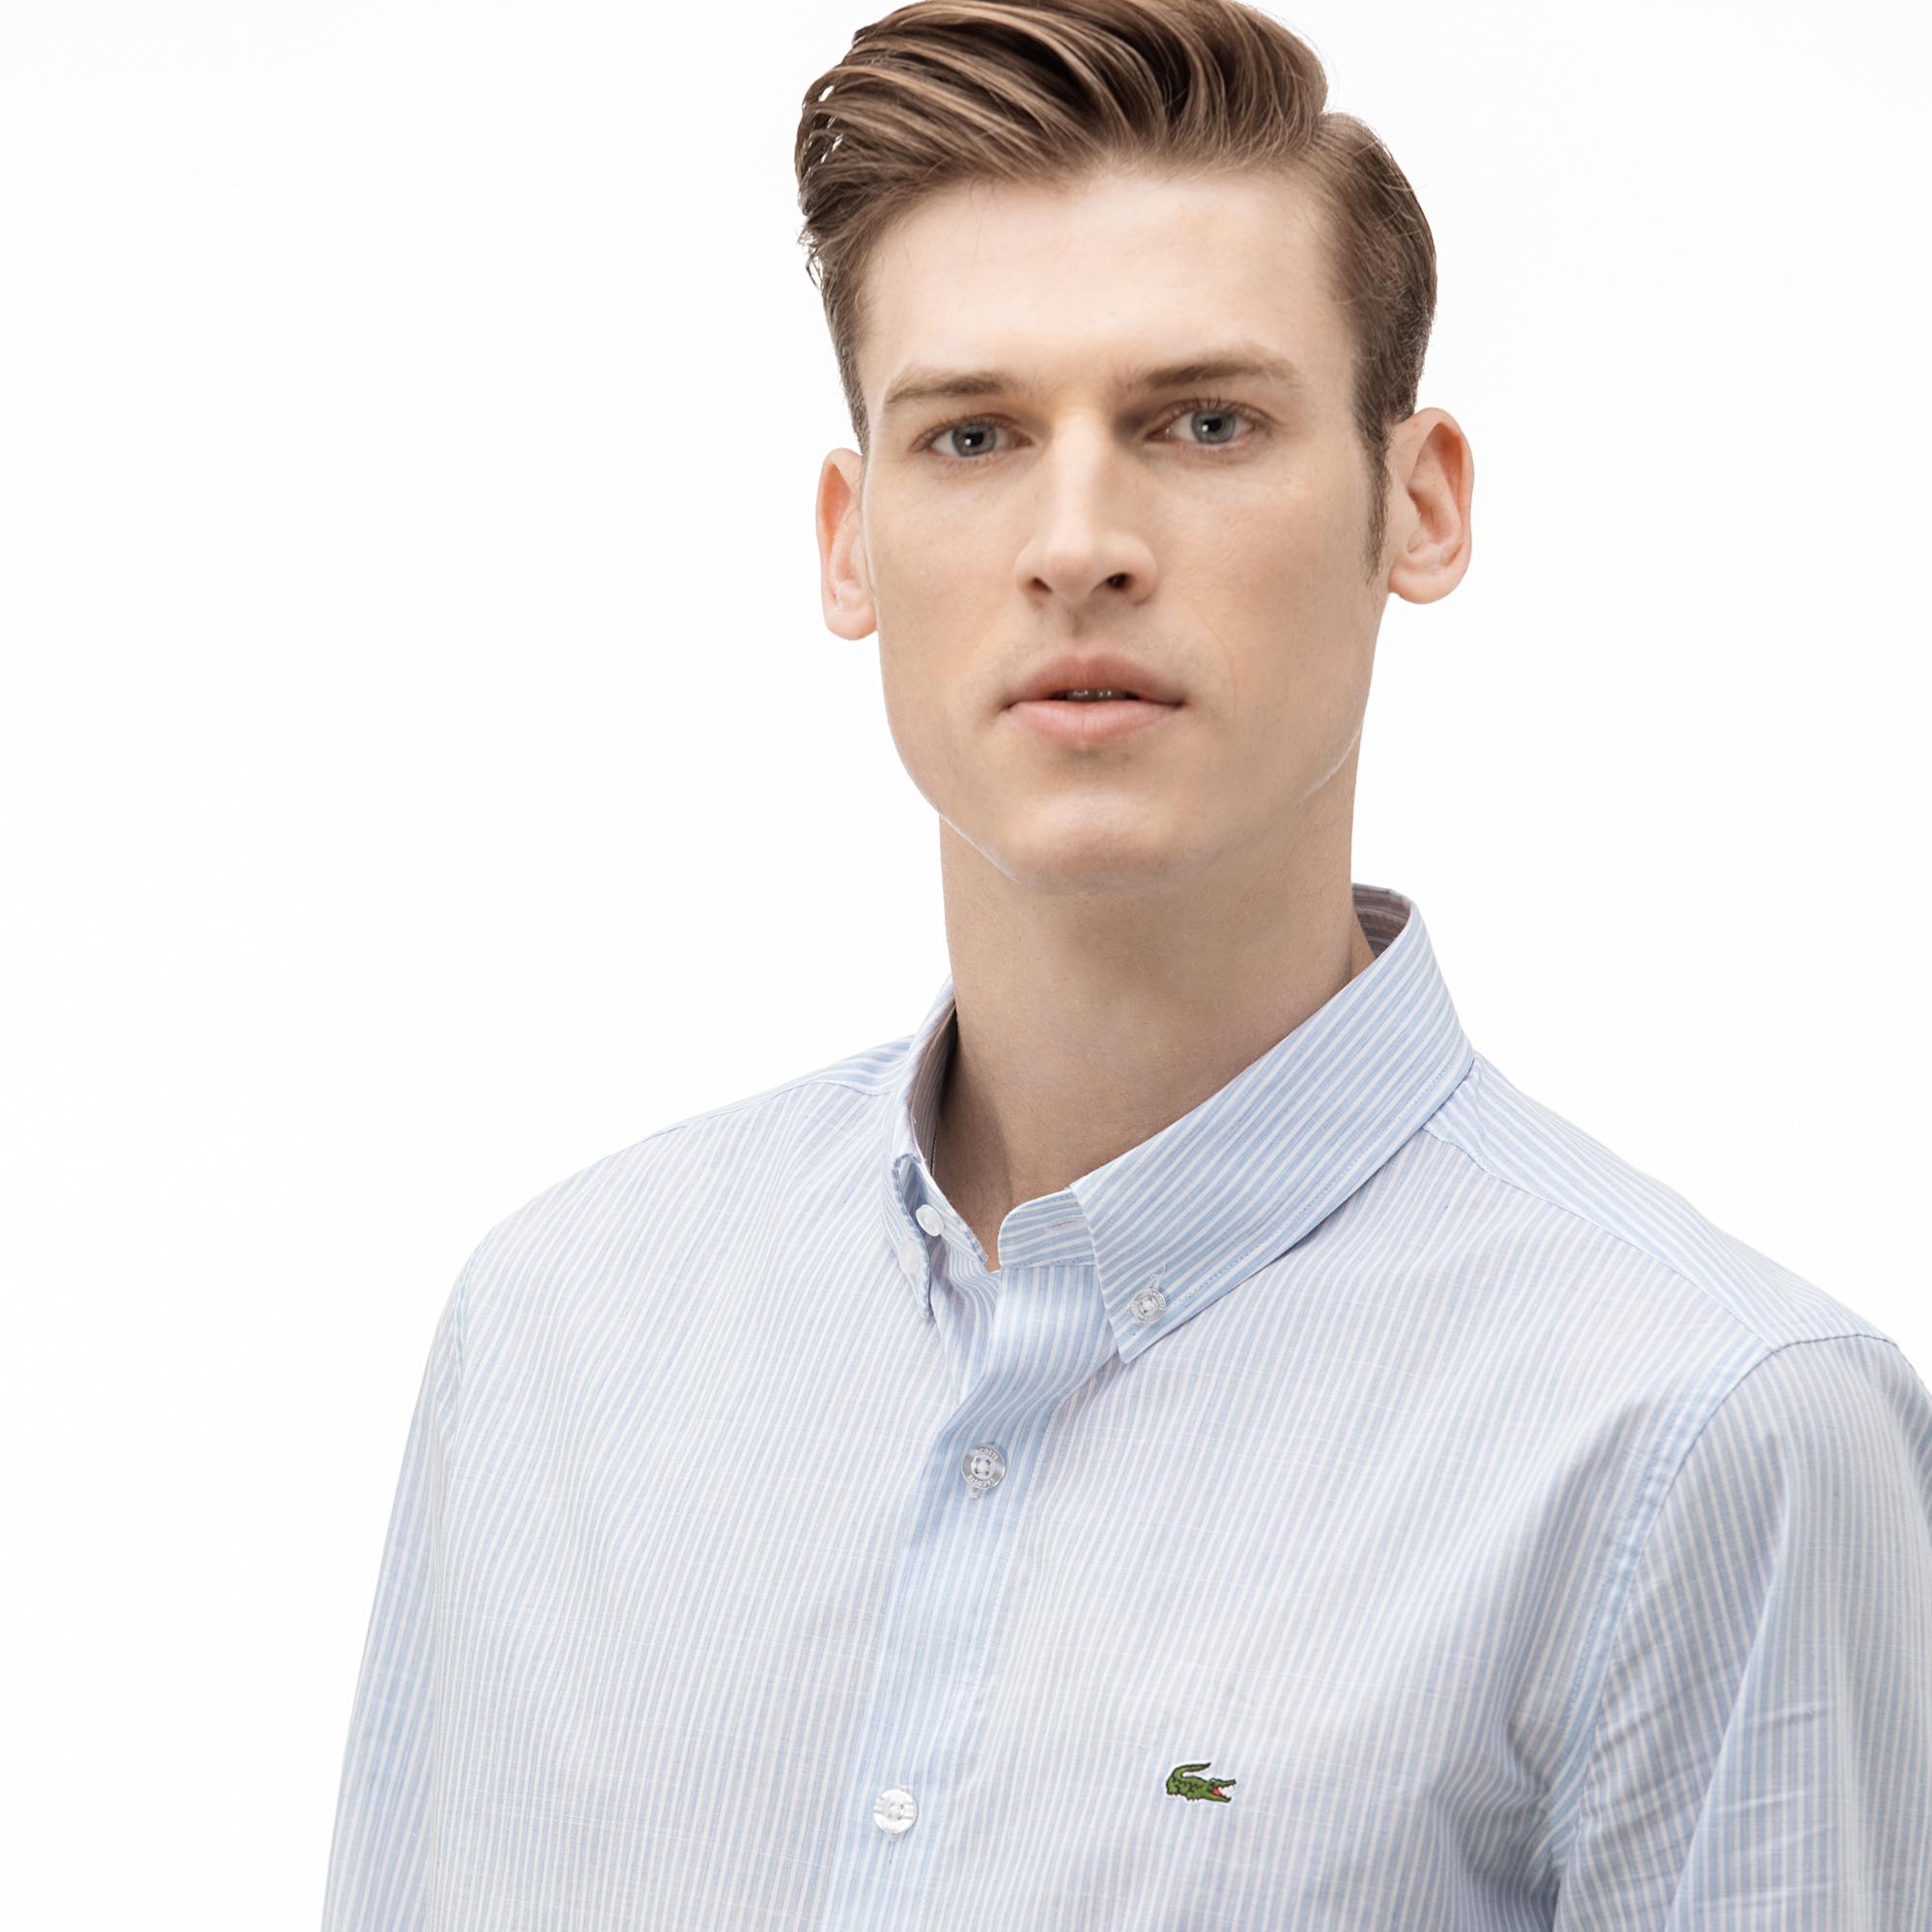 Lacoste Men's Slim Fit Buttoned-Up Collar Striped Shirt